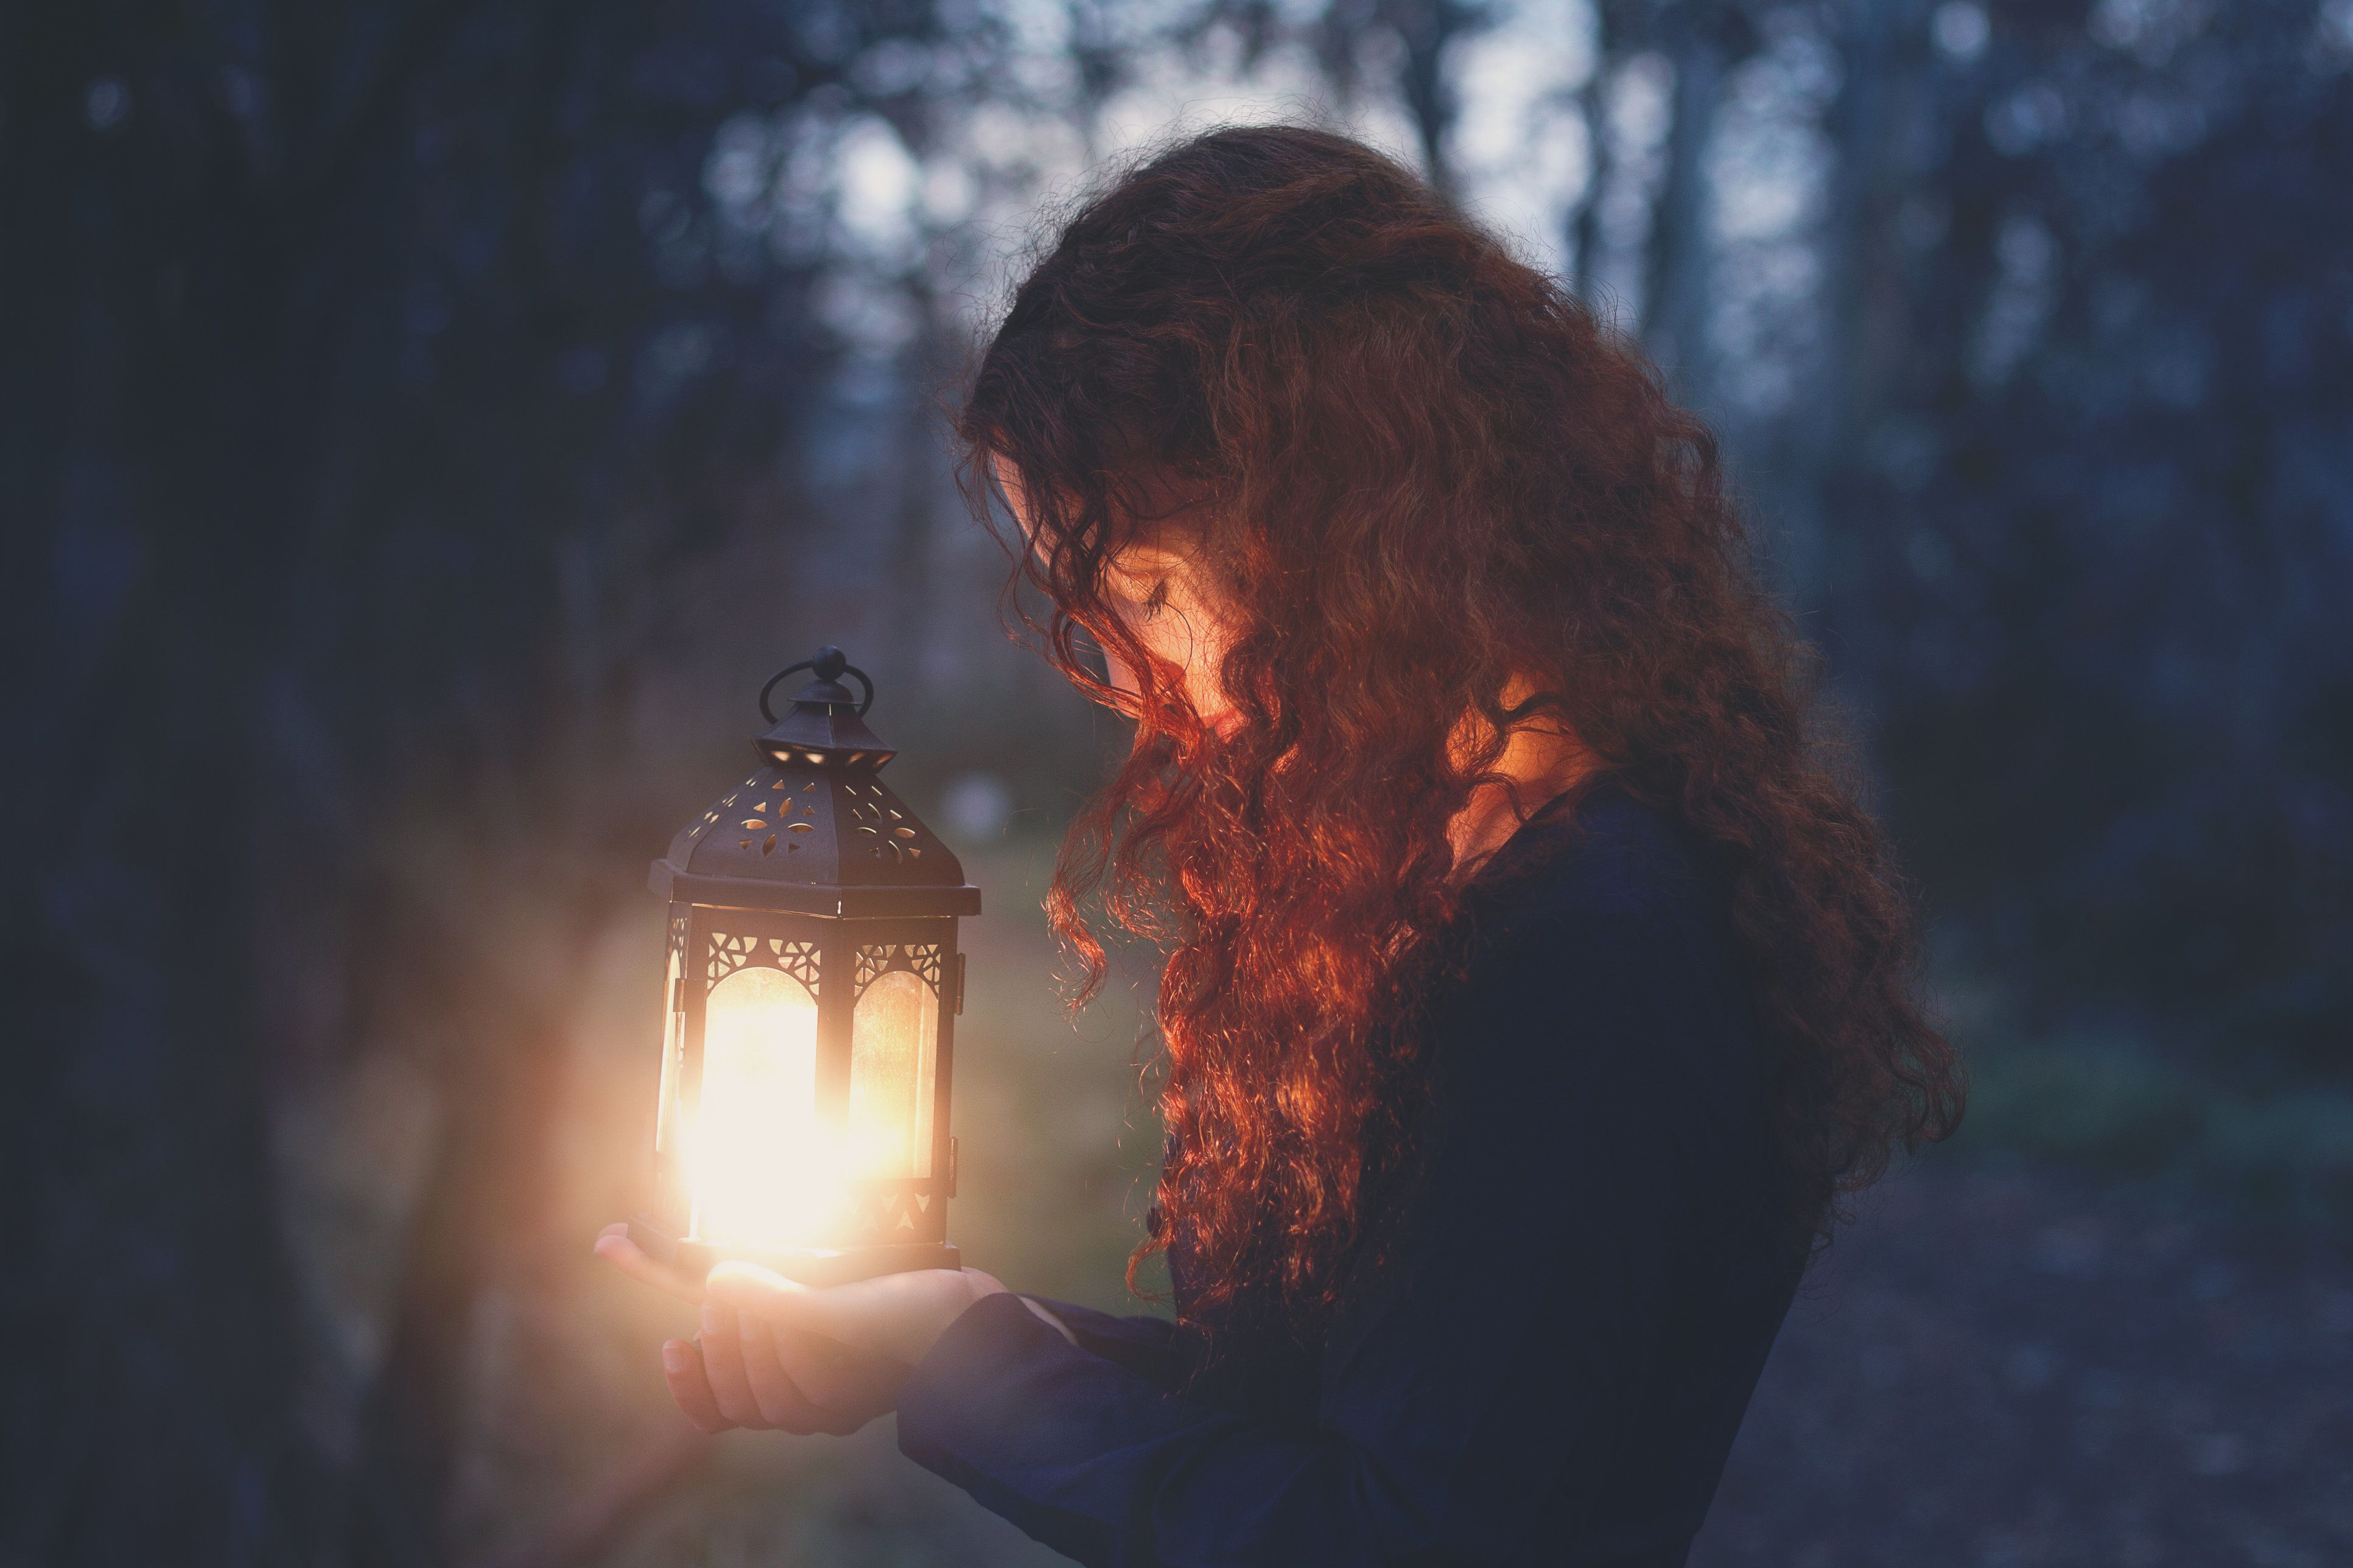 Young woman with long curly red hair wearing long-sleeved blue dress stands in profile with head bowed and eyes closed, holding small illuminated iron lantern with both hands outdoors in forest at dusk.